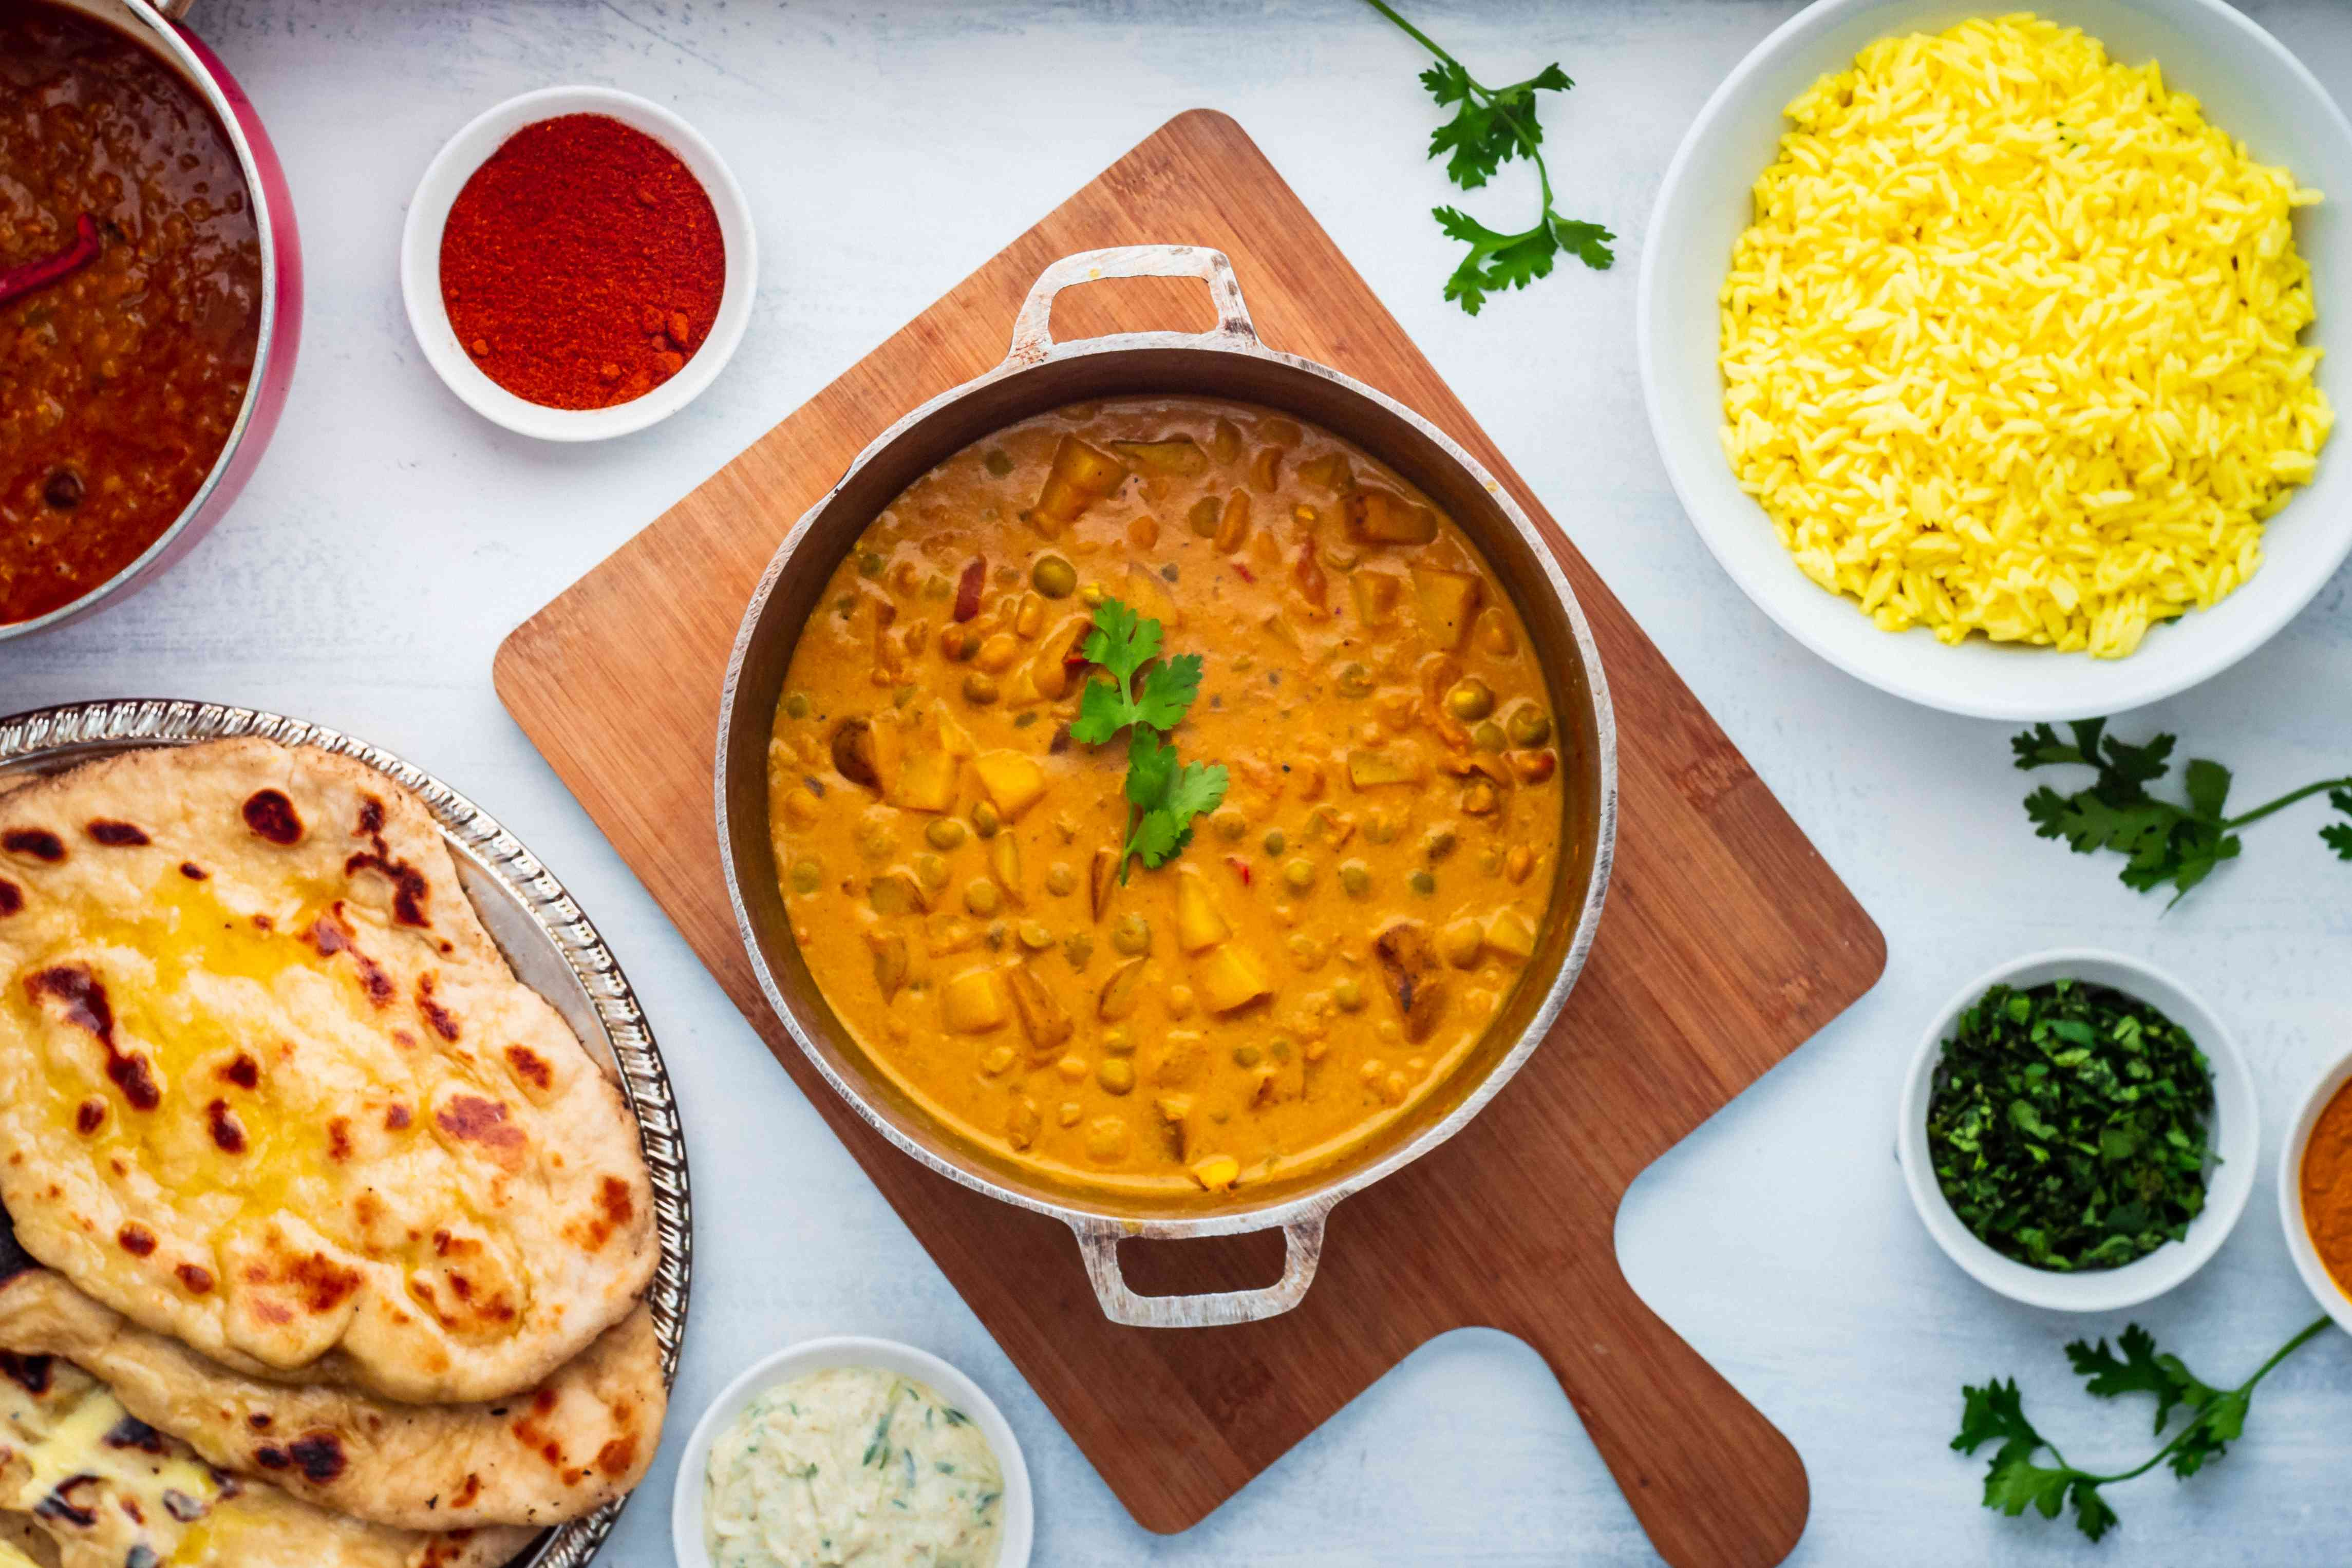 Curry with pea and potato with rice bowl, dal, naan bread, and spices.